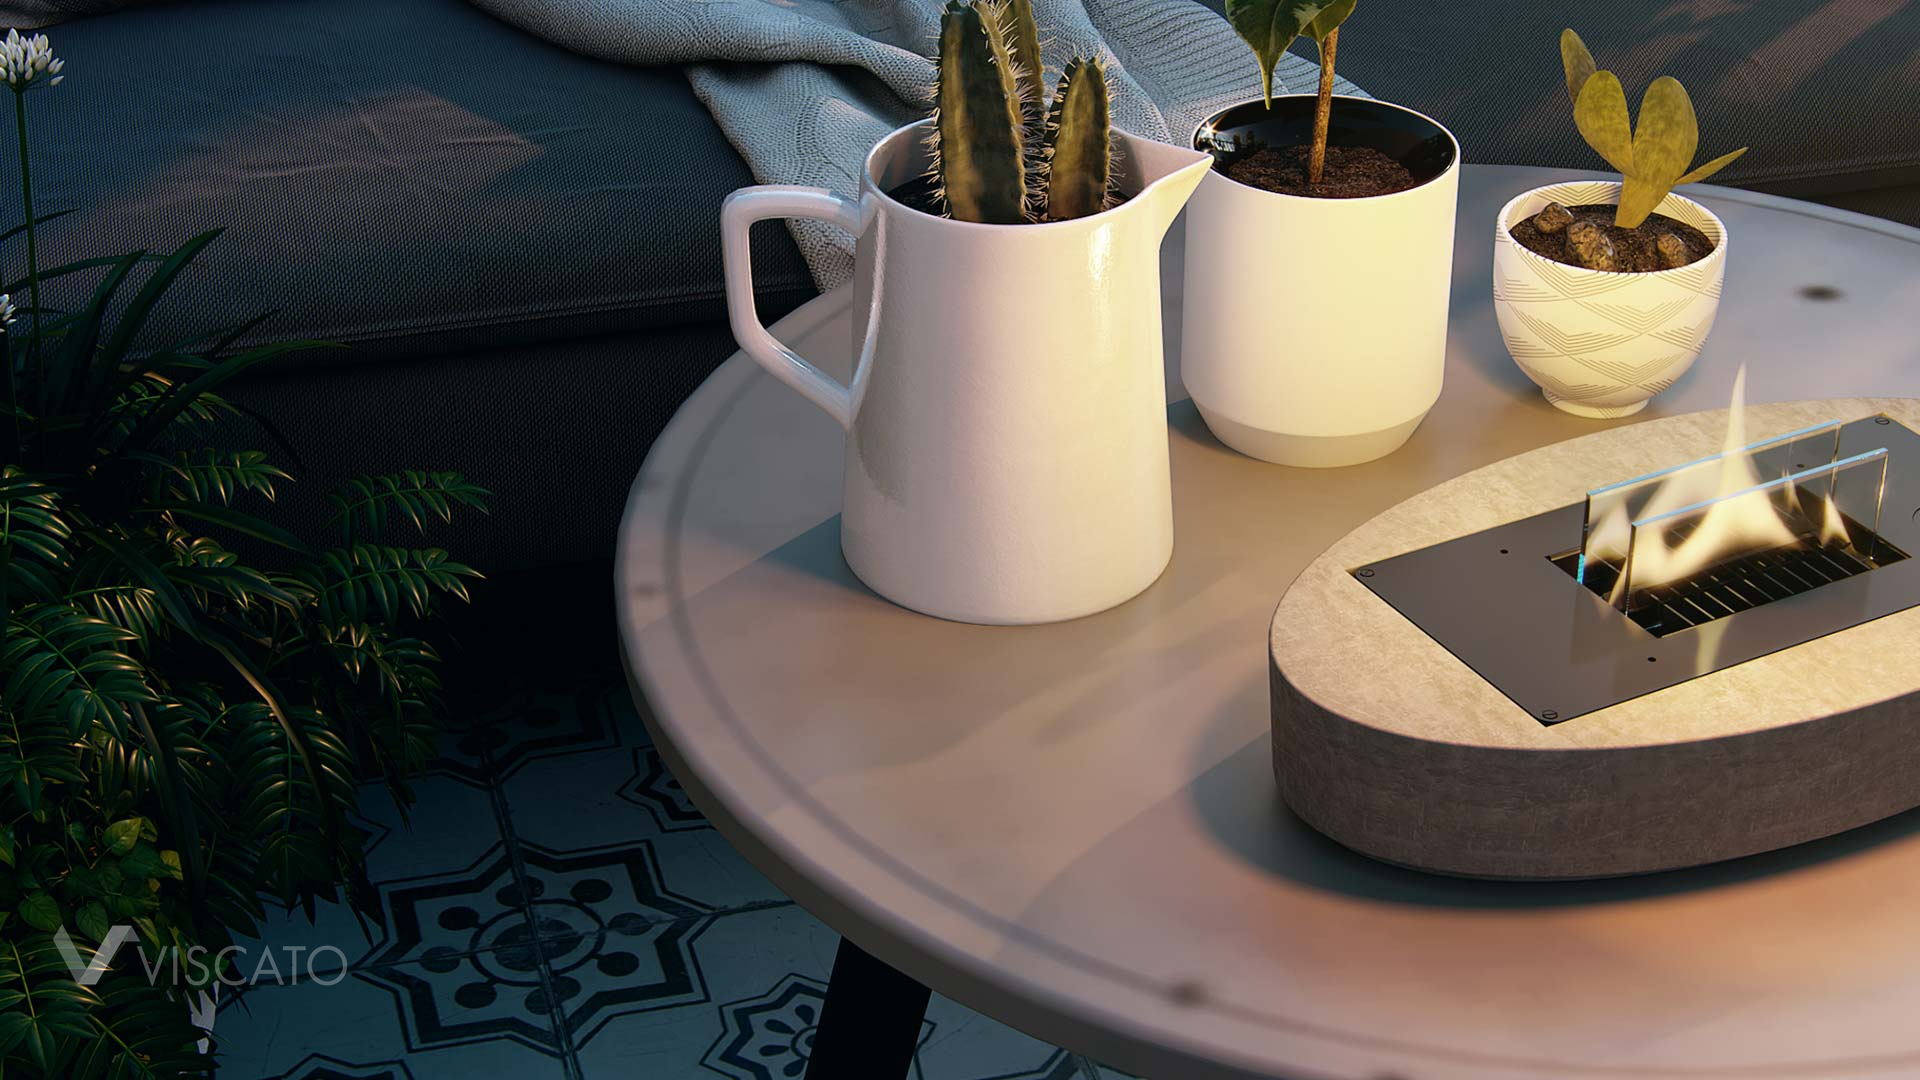 table with a burner, Viscato 3D